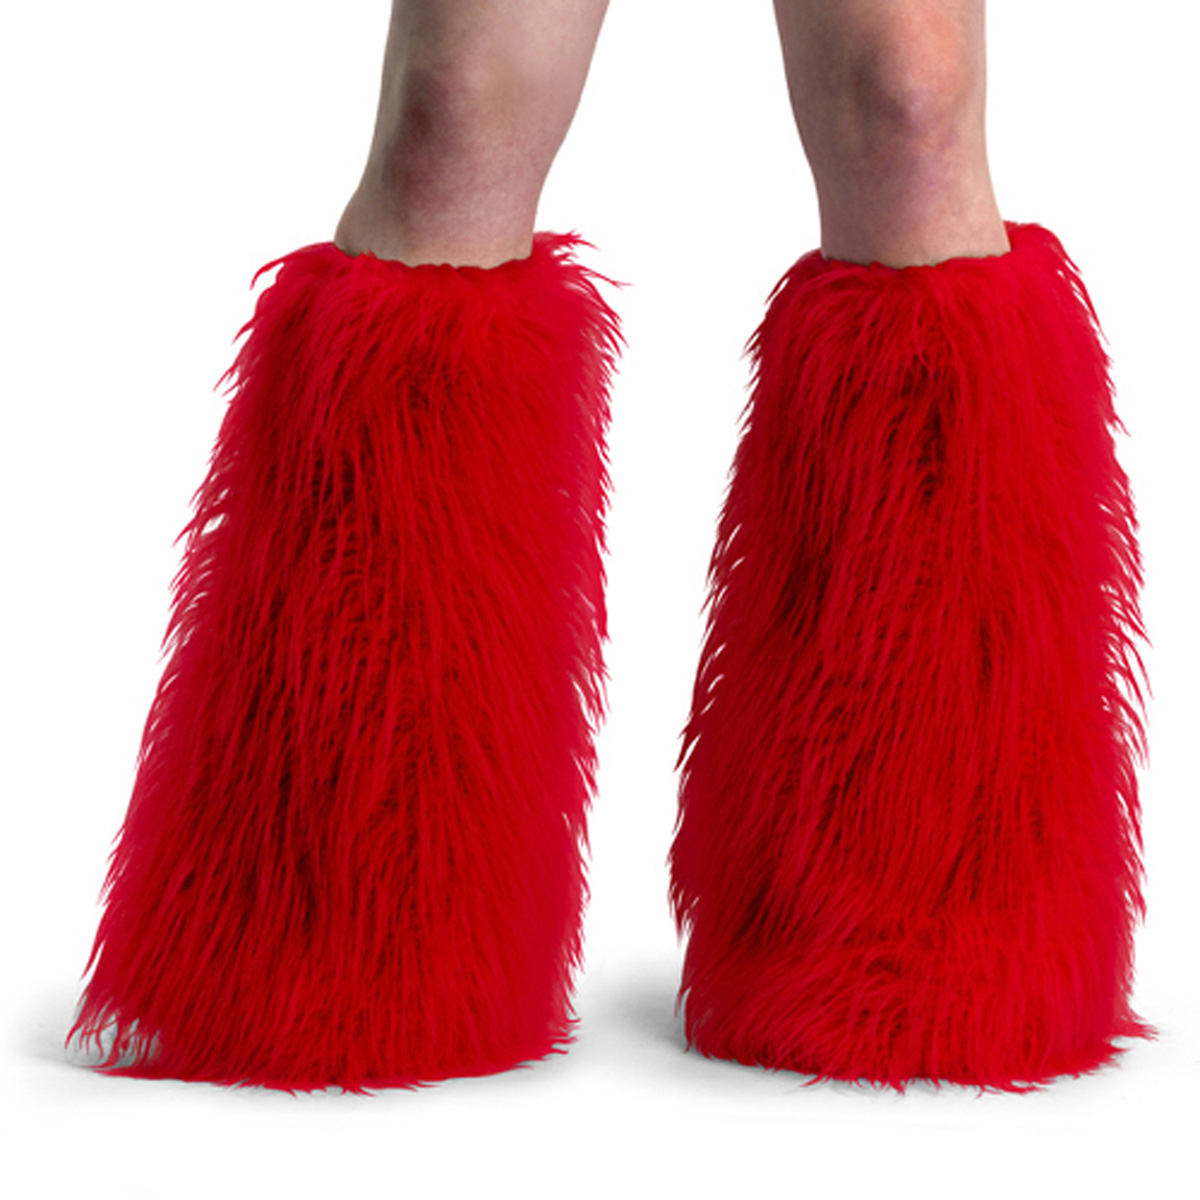 ACCESSORIES YETI-01 Red Faux Fur Boot Sleeve/Red Faux Fur